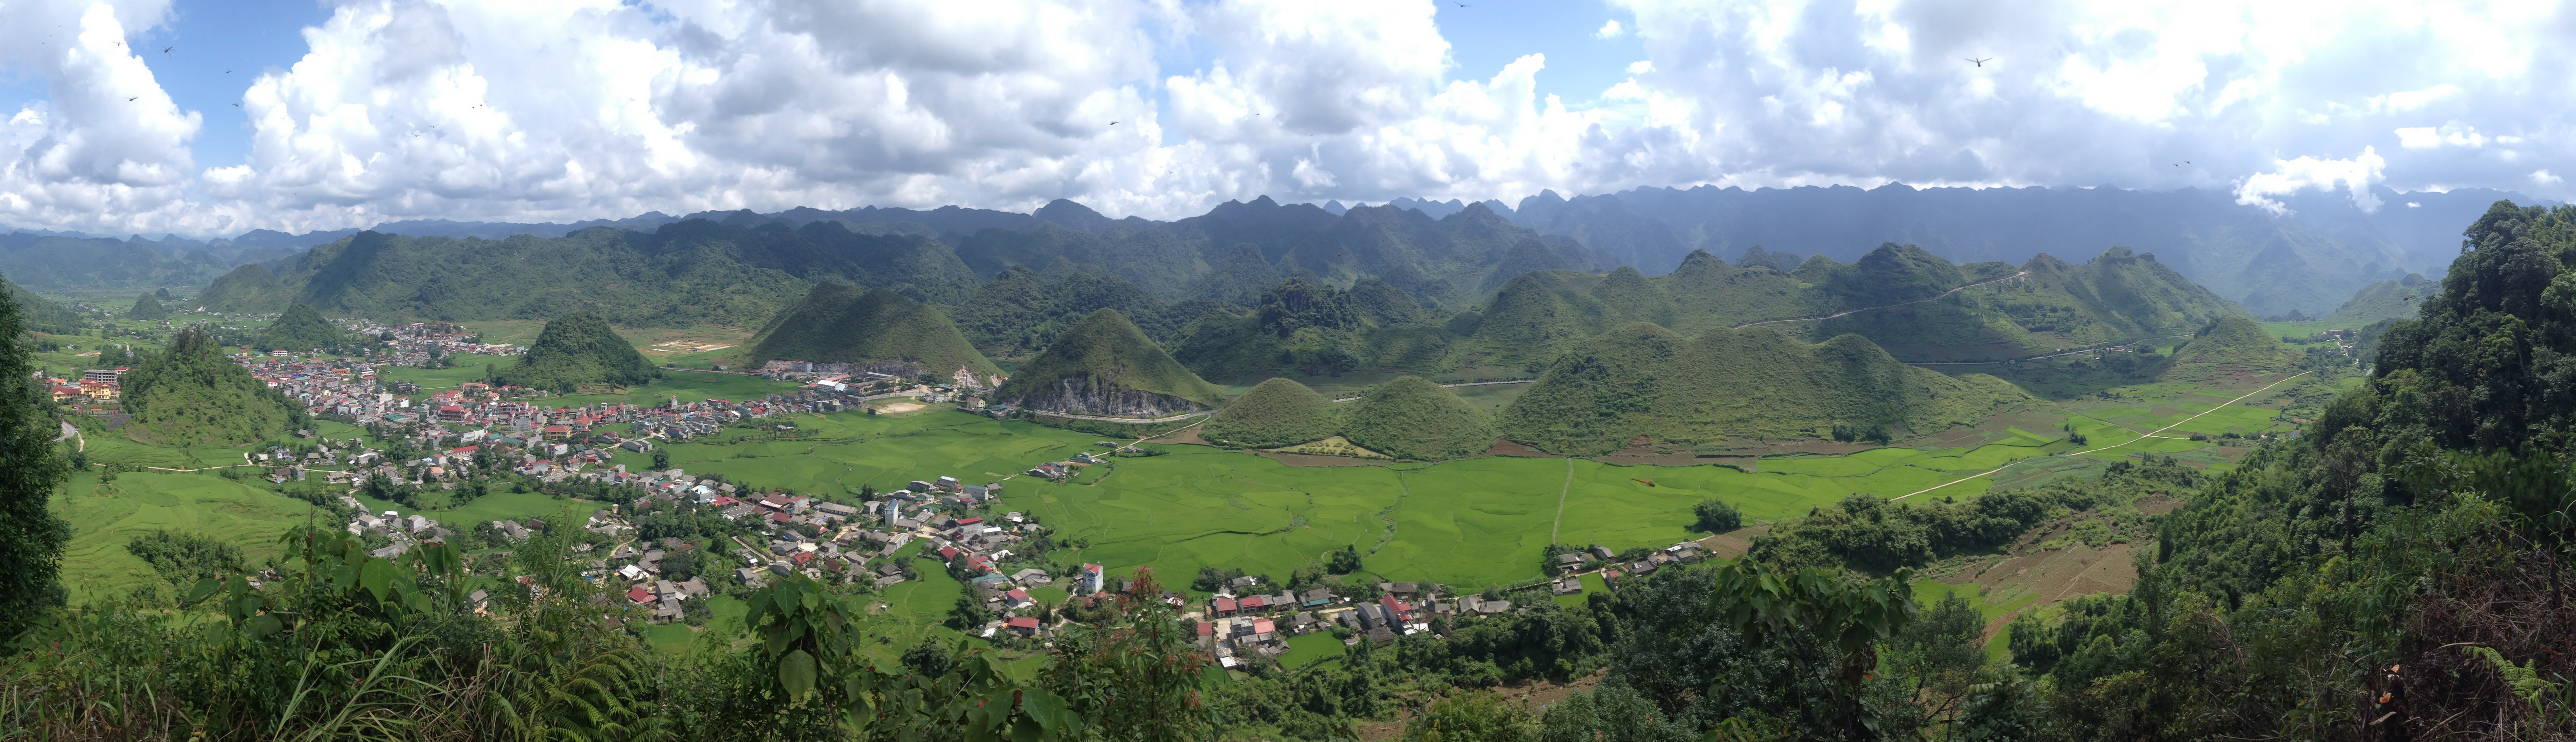 Ha Giang-Sapa 7 days 6 nights